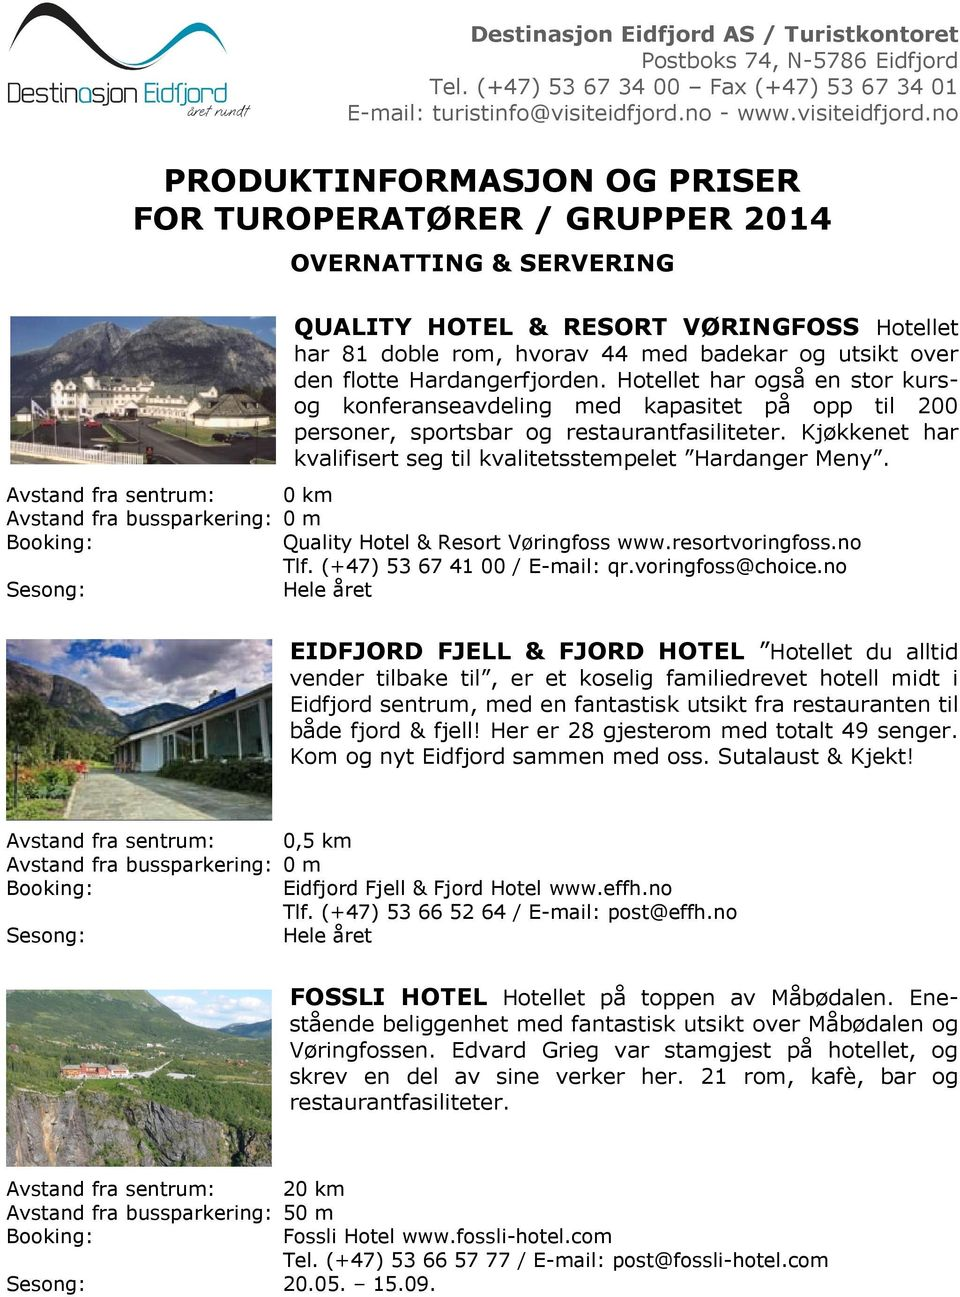 0 m Quality Hotel & Resort Vøringfoss www.resortvoringfoss.no Tlf. (+47) 53 67 41 00 / E-mail: qr.voringfoss@choice.